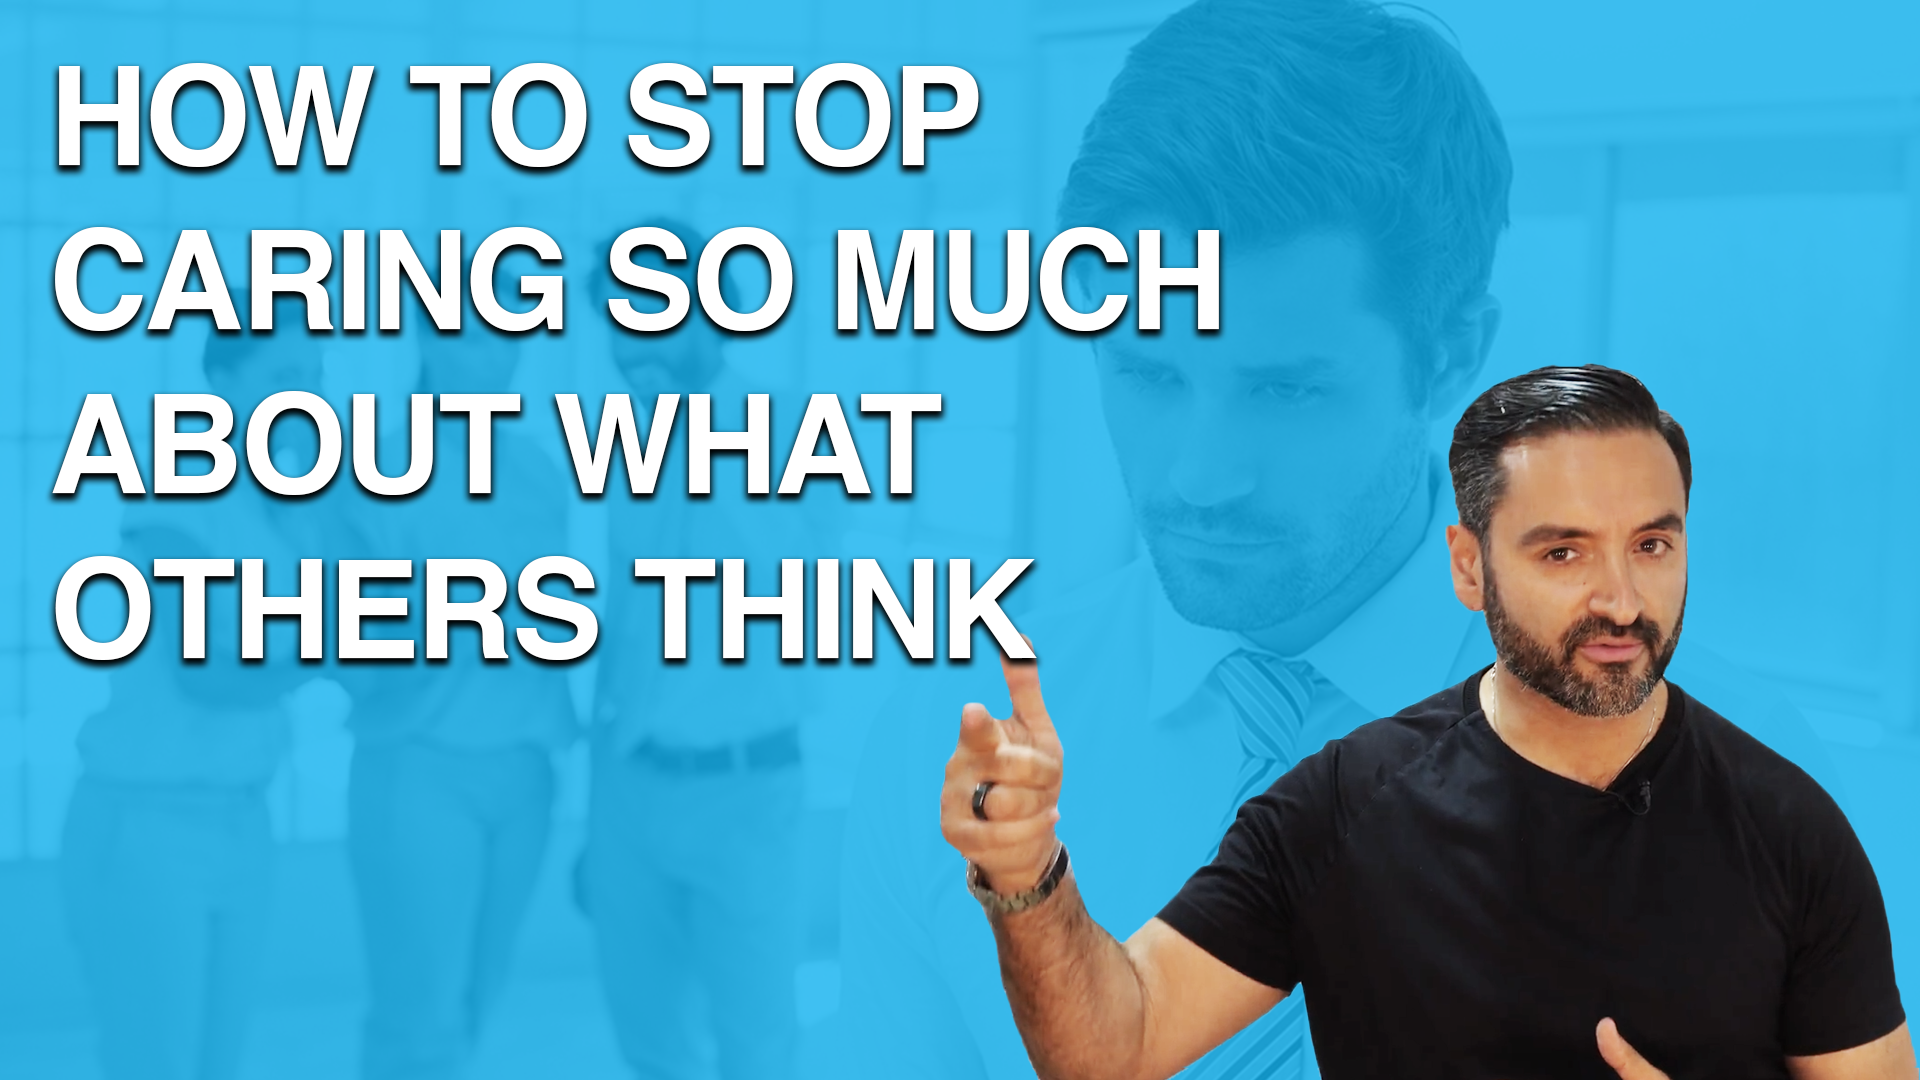 How to Stop Caring So Much About What Others Think